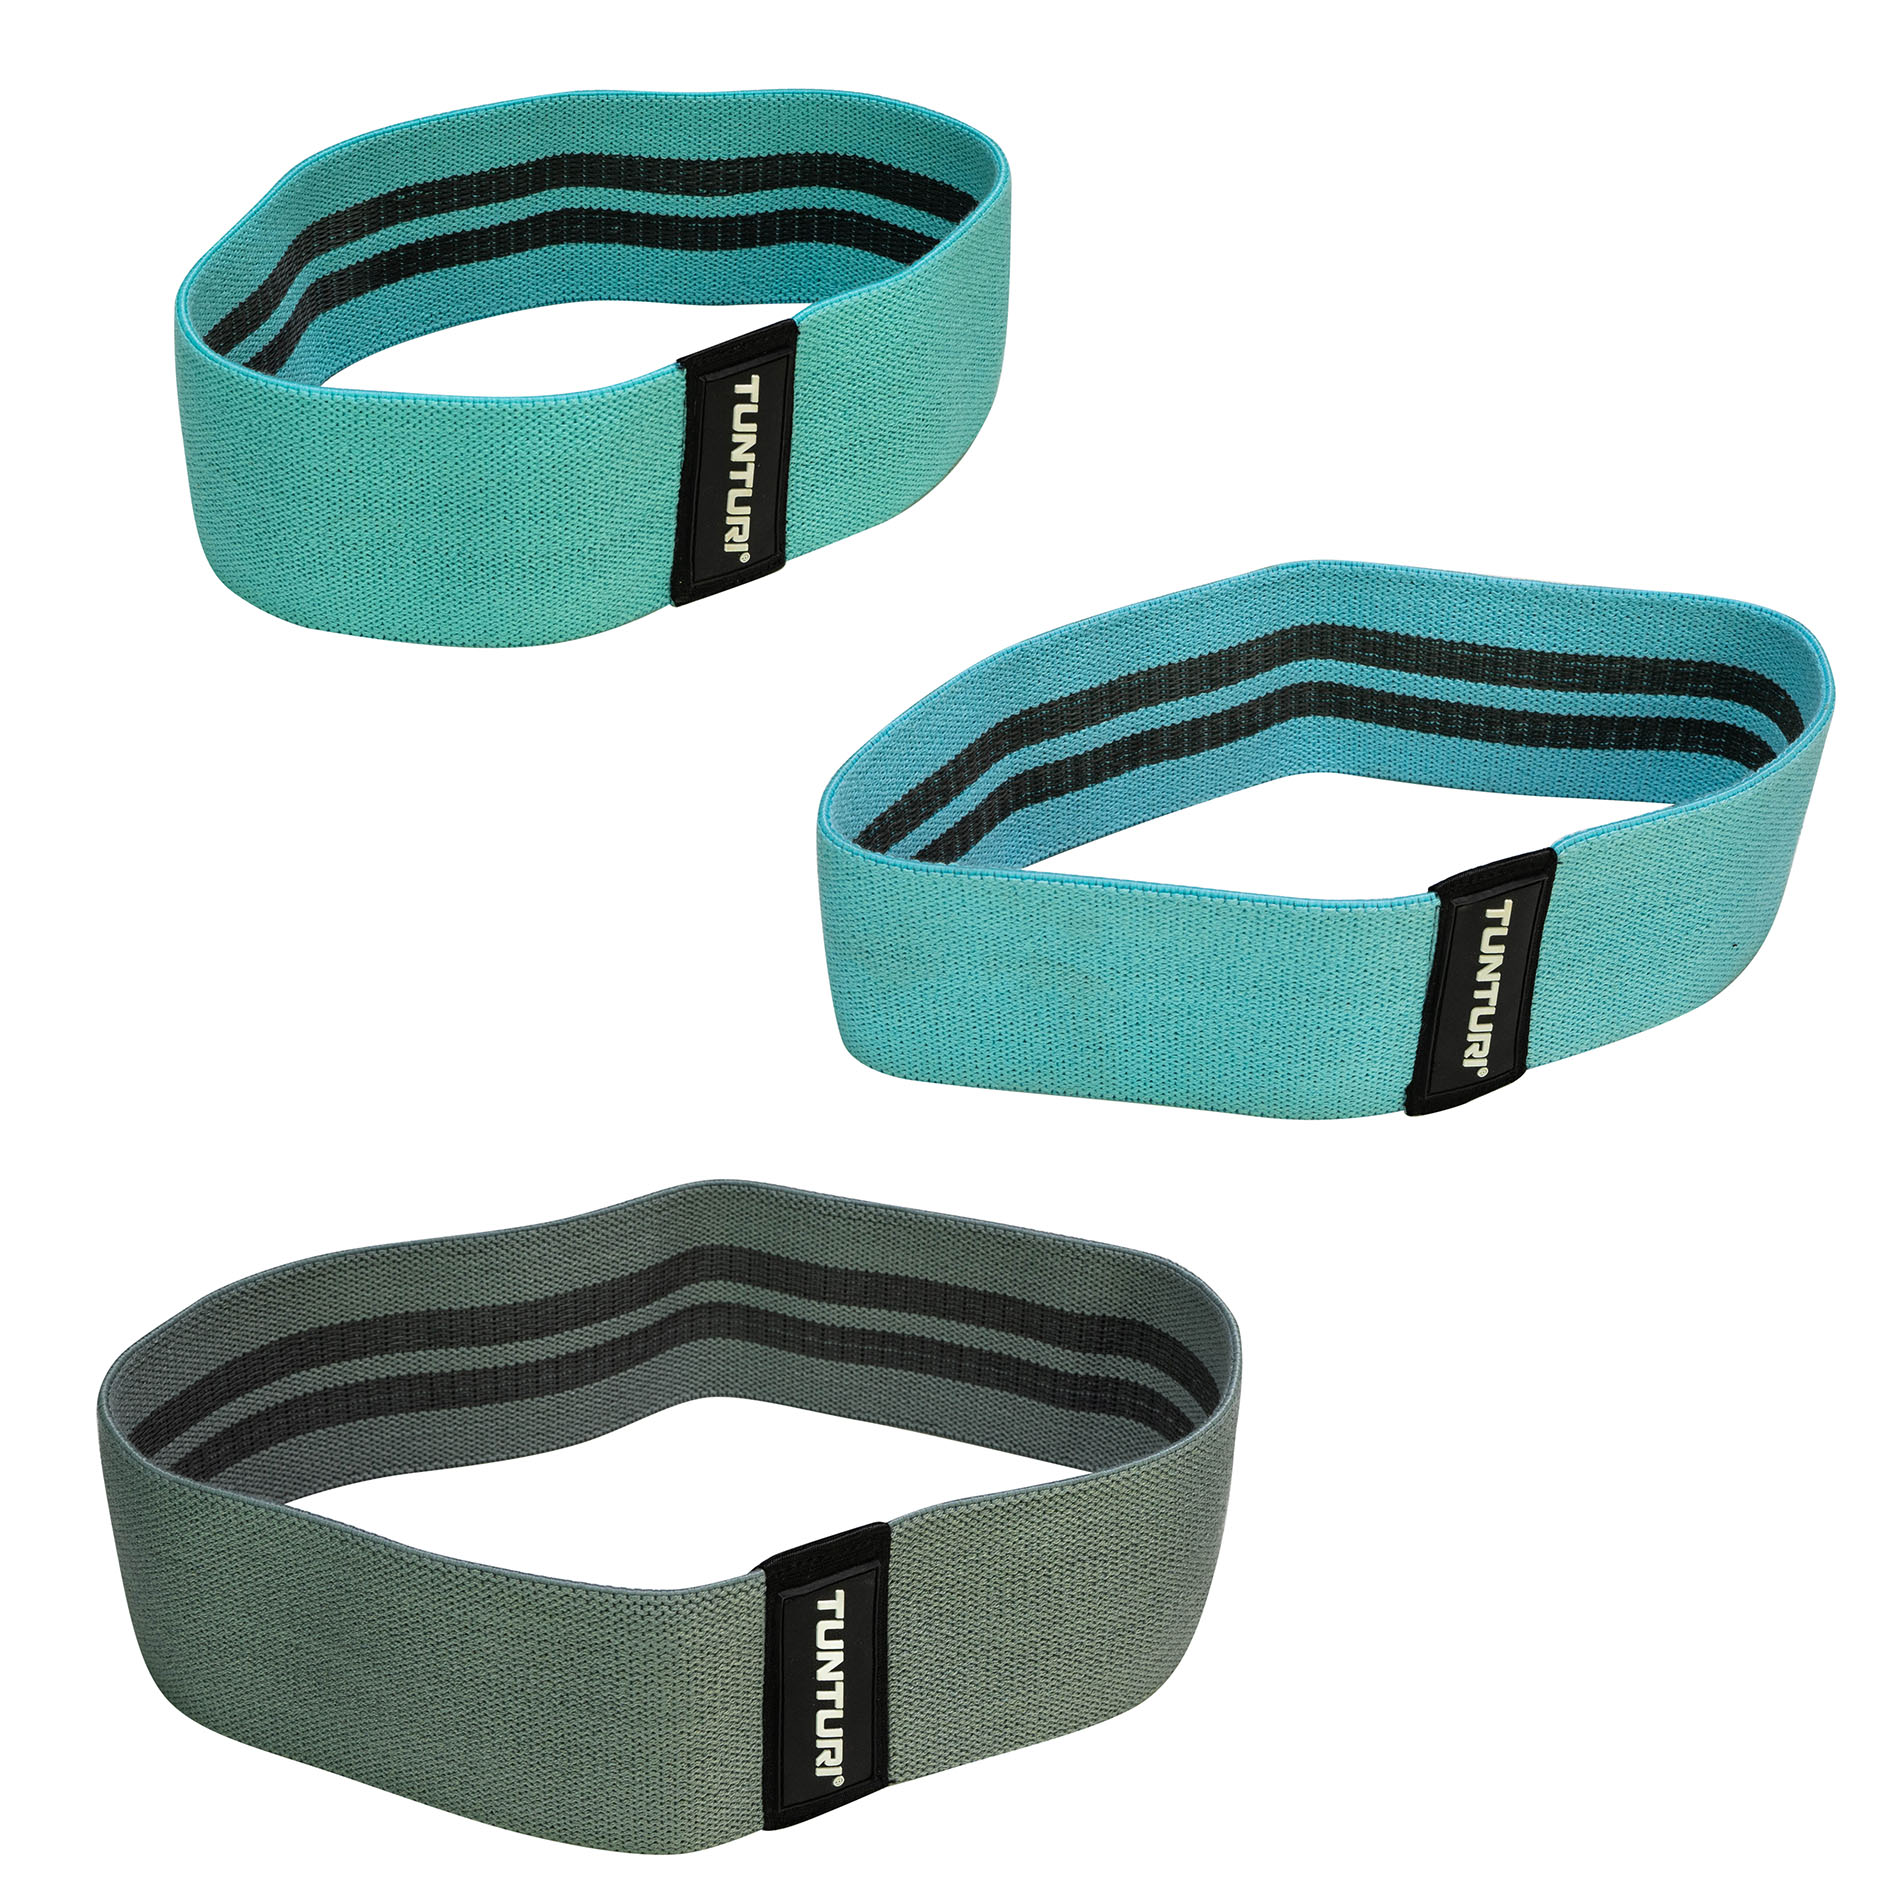 Weerstandsbanden set textiel - resistance band set - 3 st